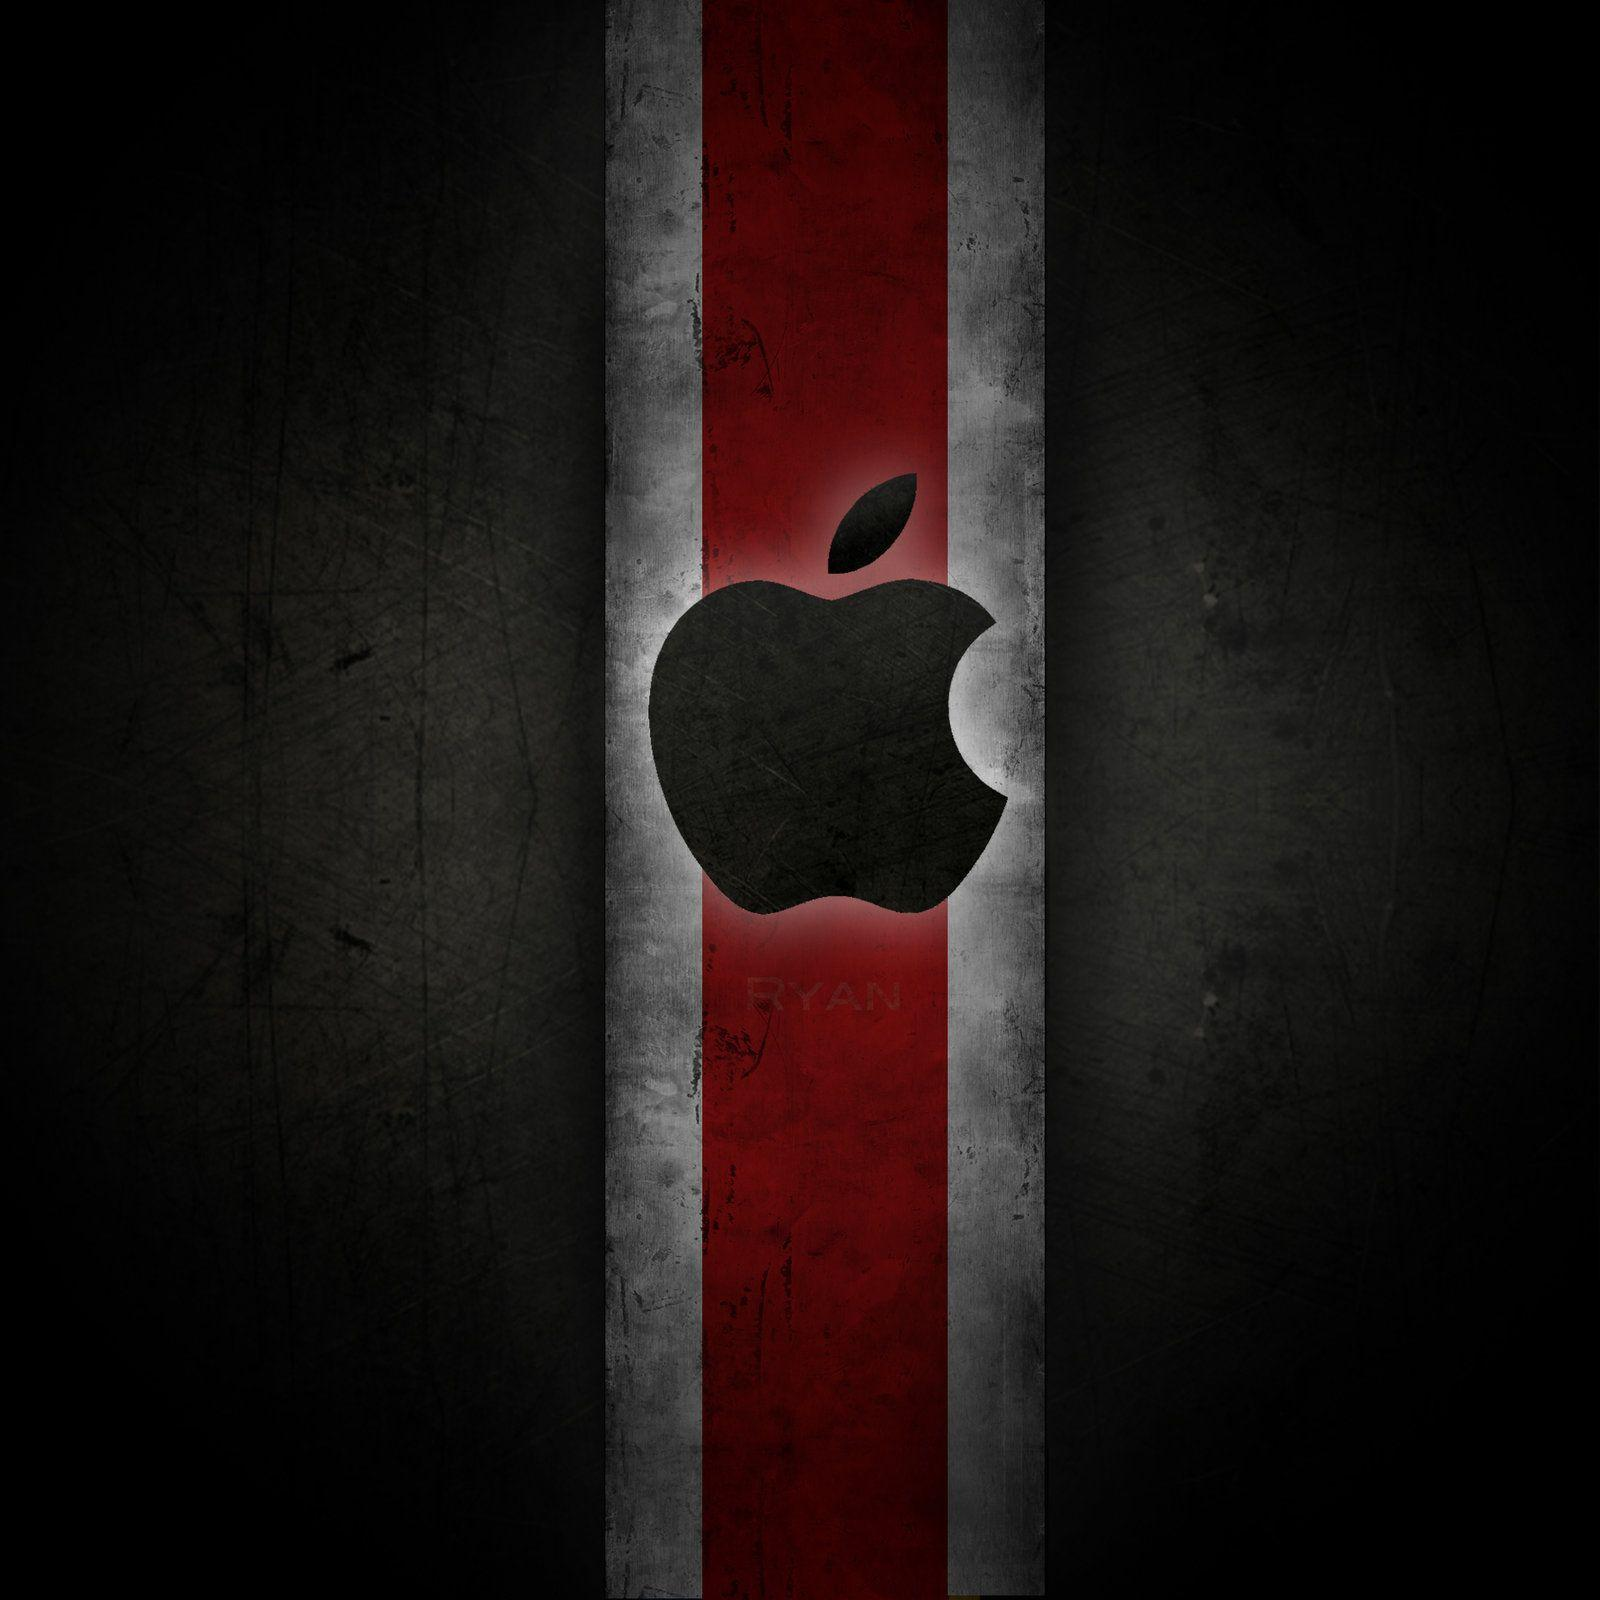 Red Apple Wallpapers Iphone Wallpaper Cave